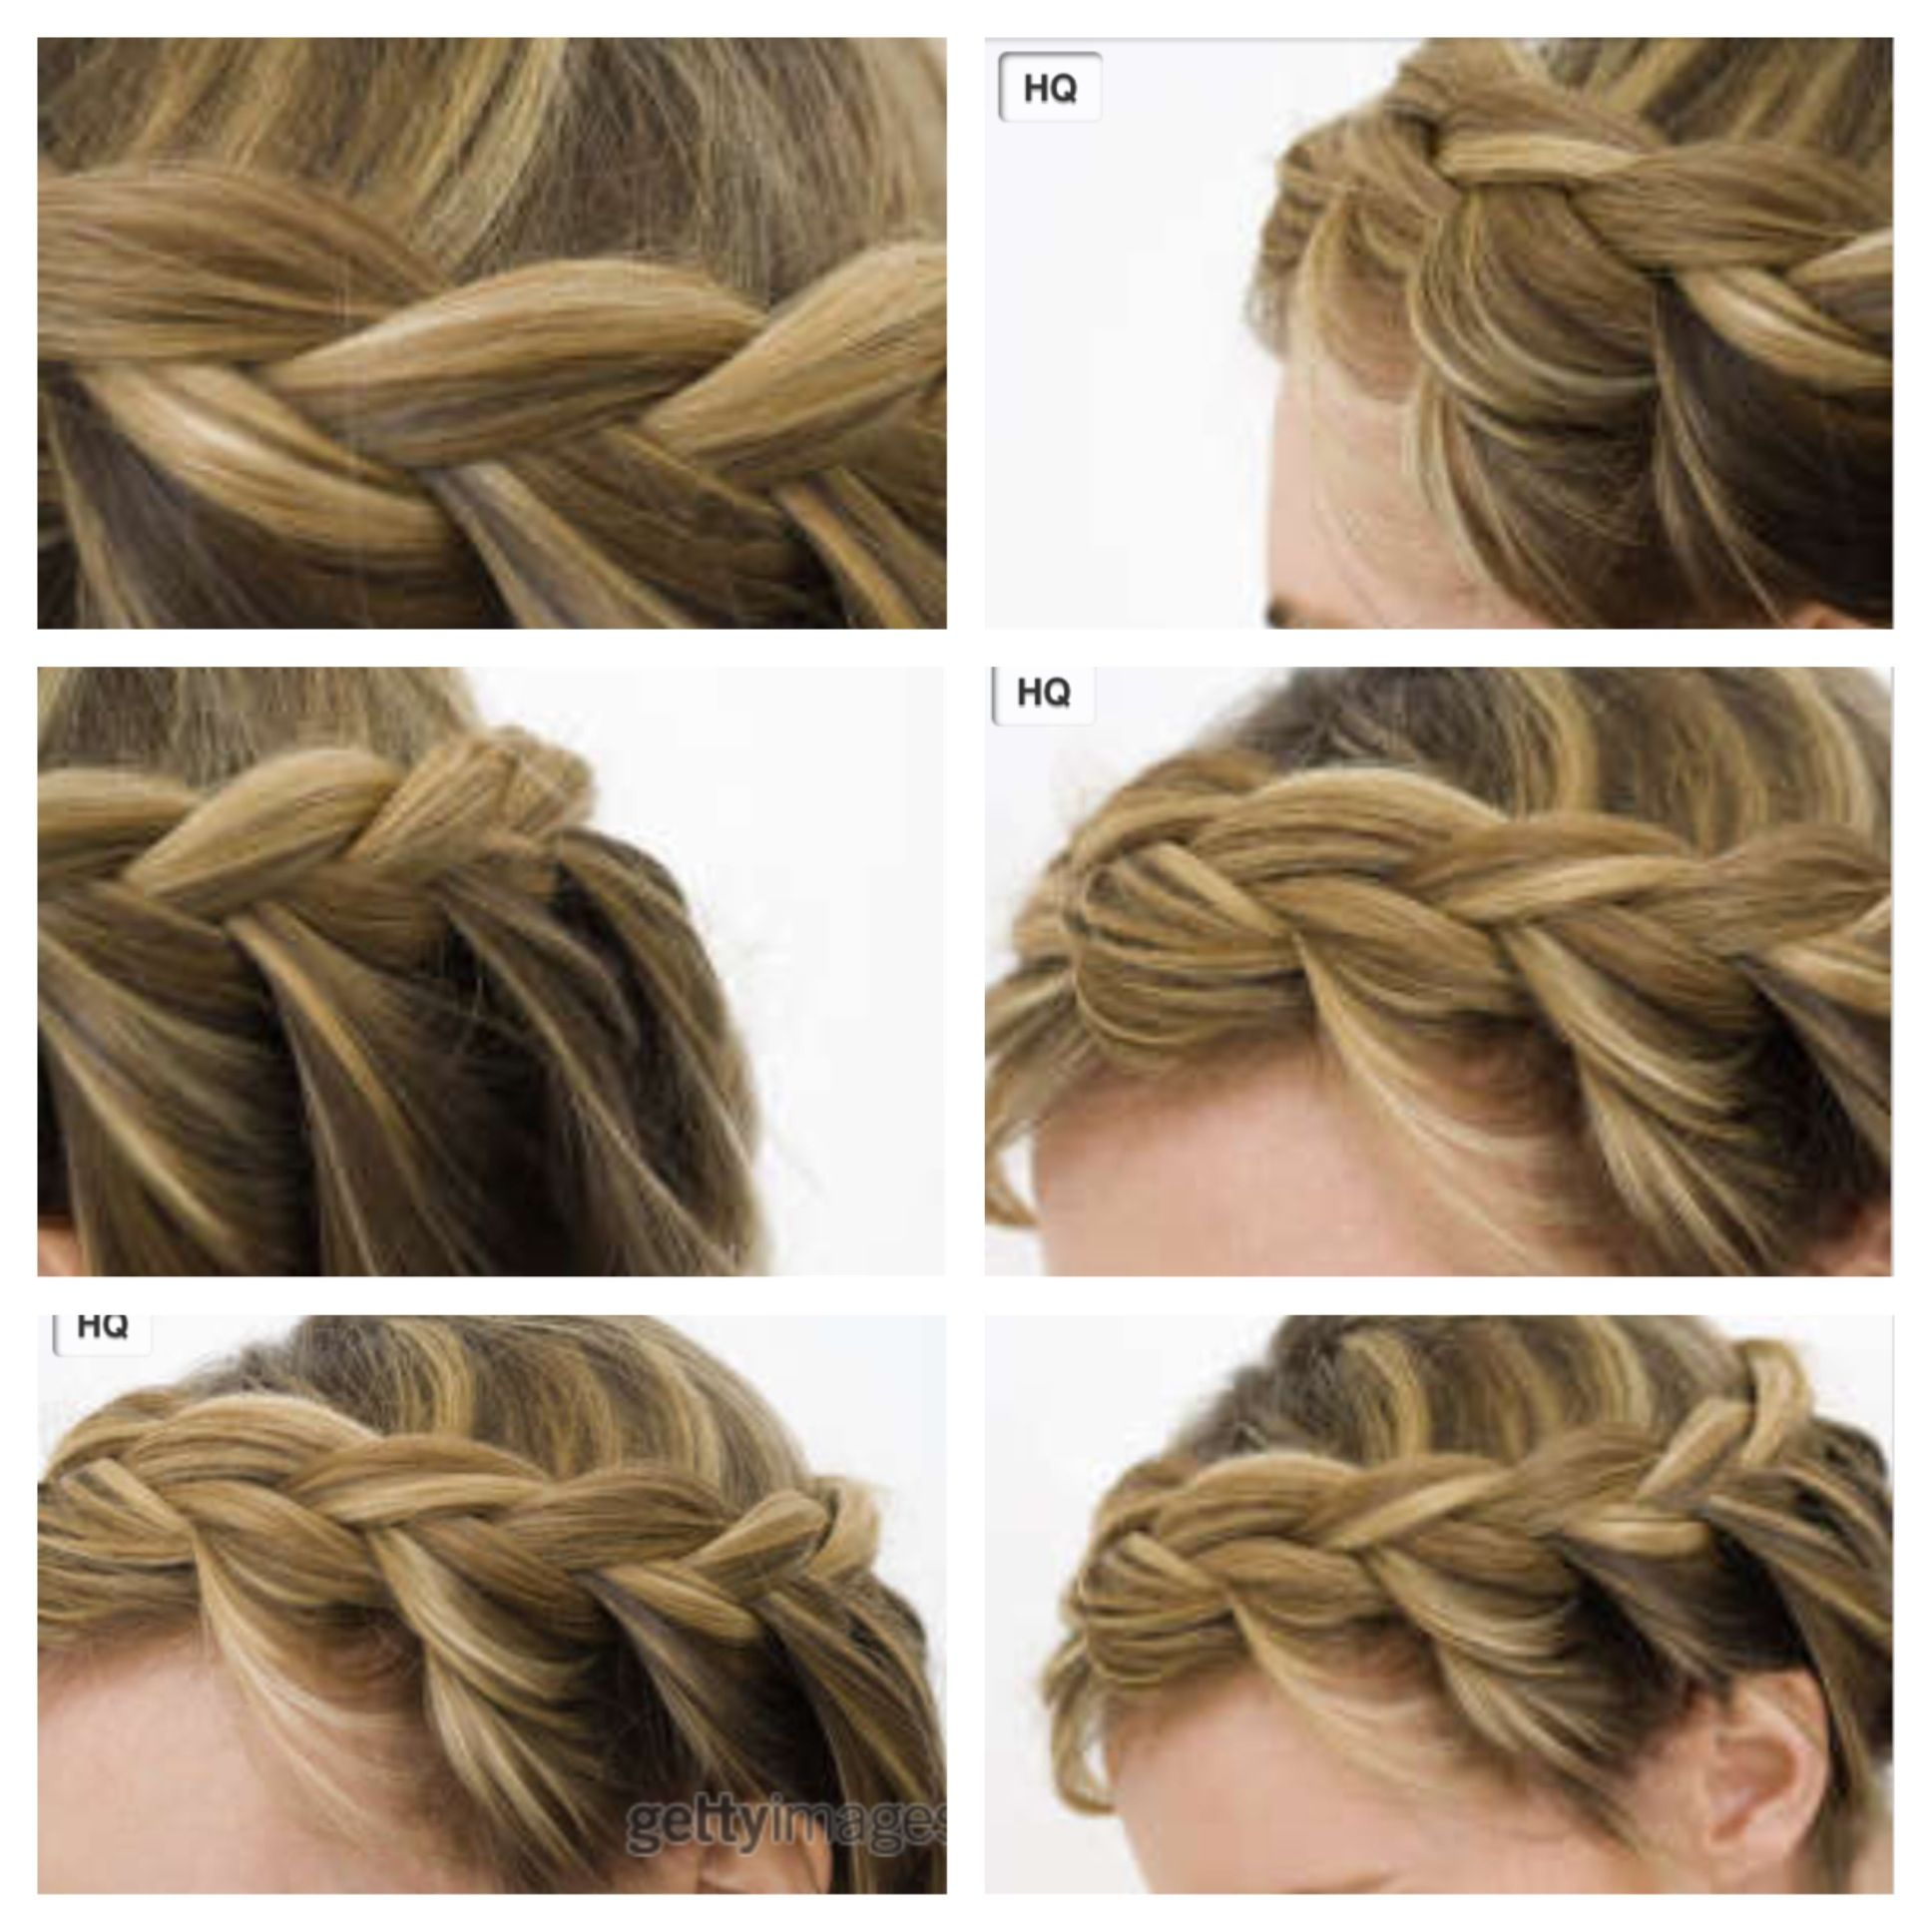 Different angles of a really cute braided hairstyle | Cute ...